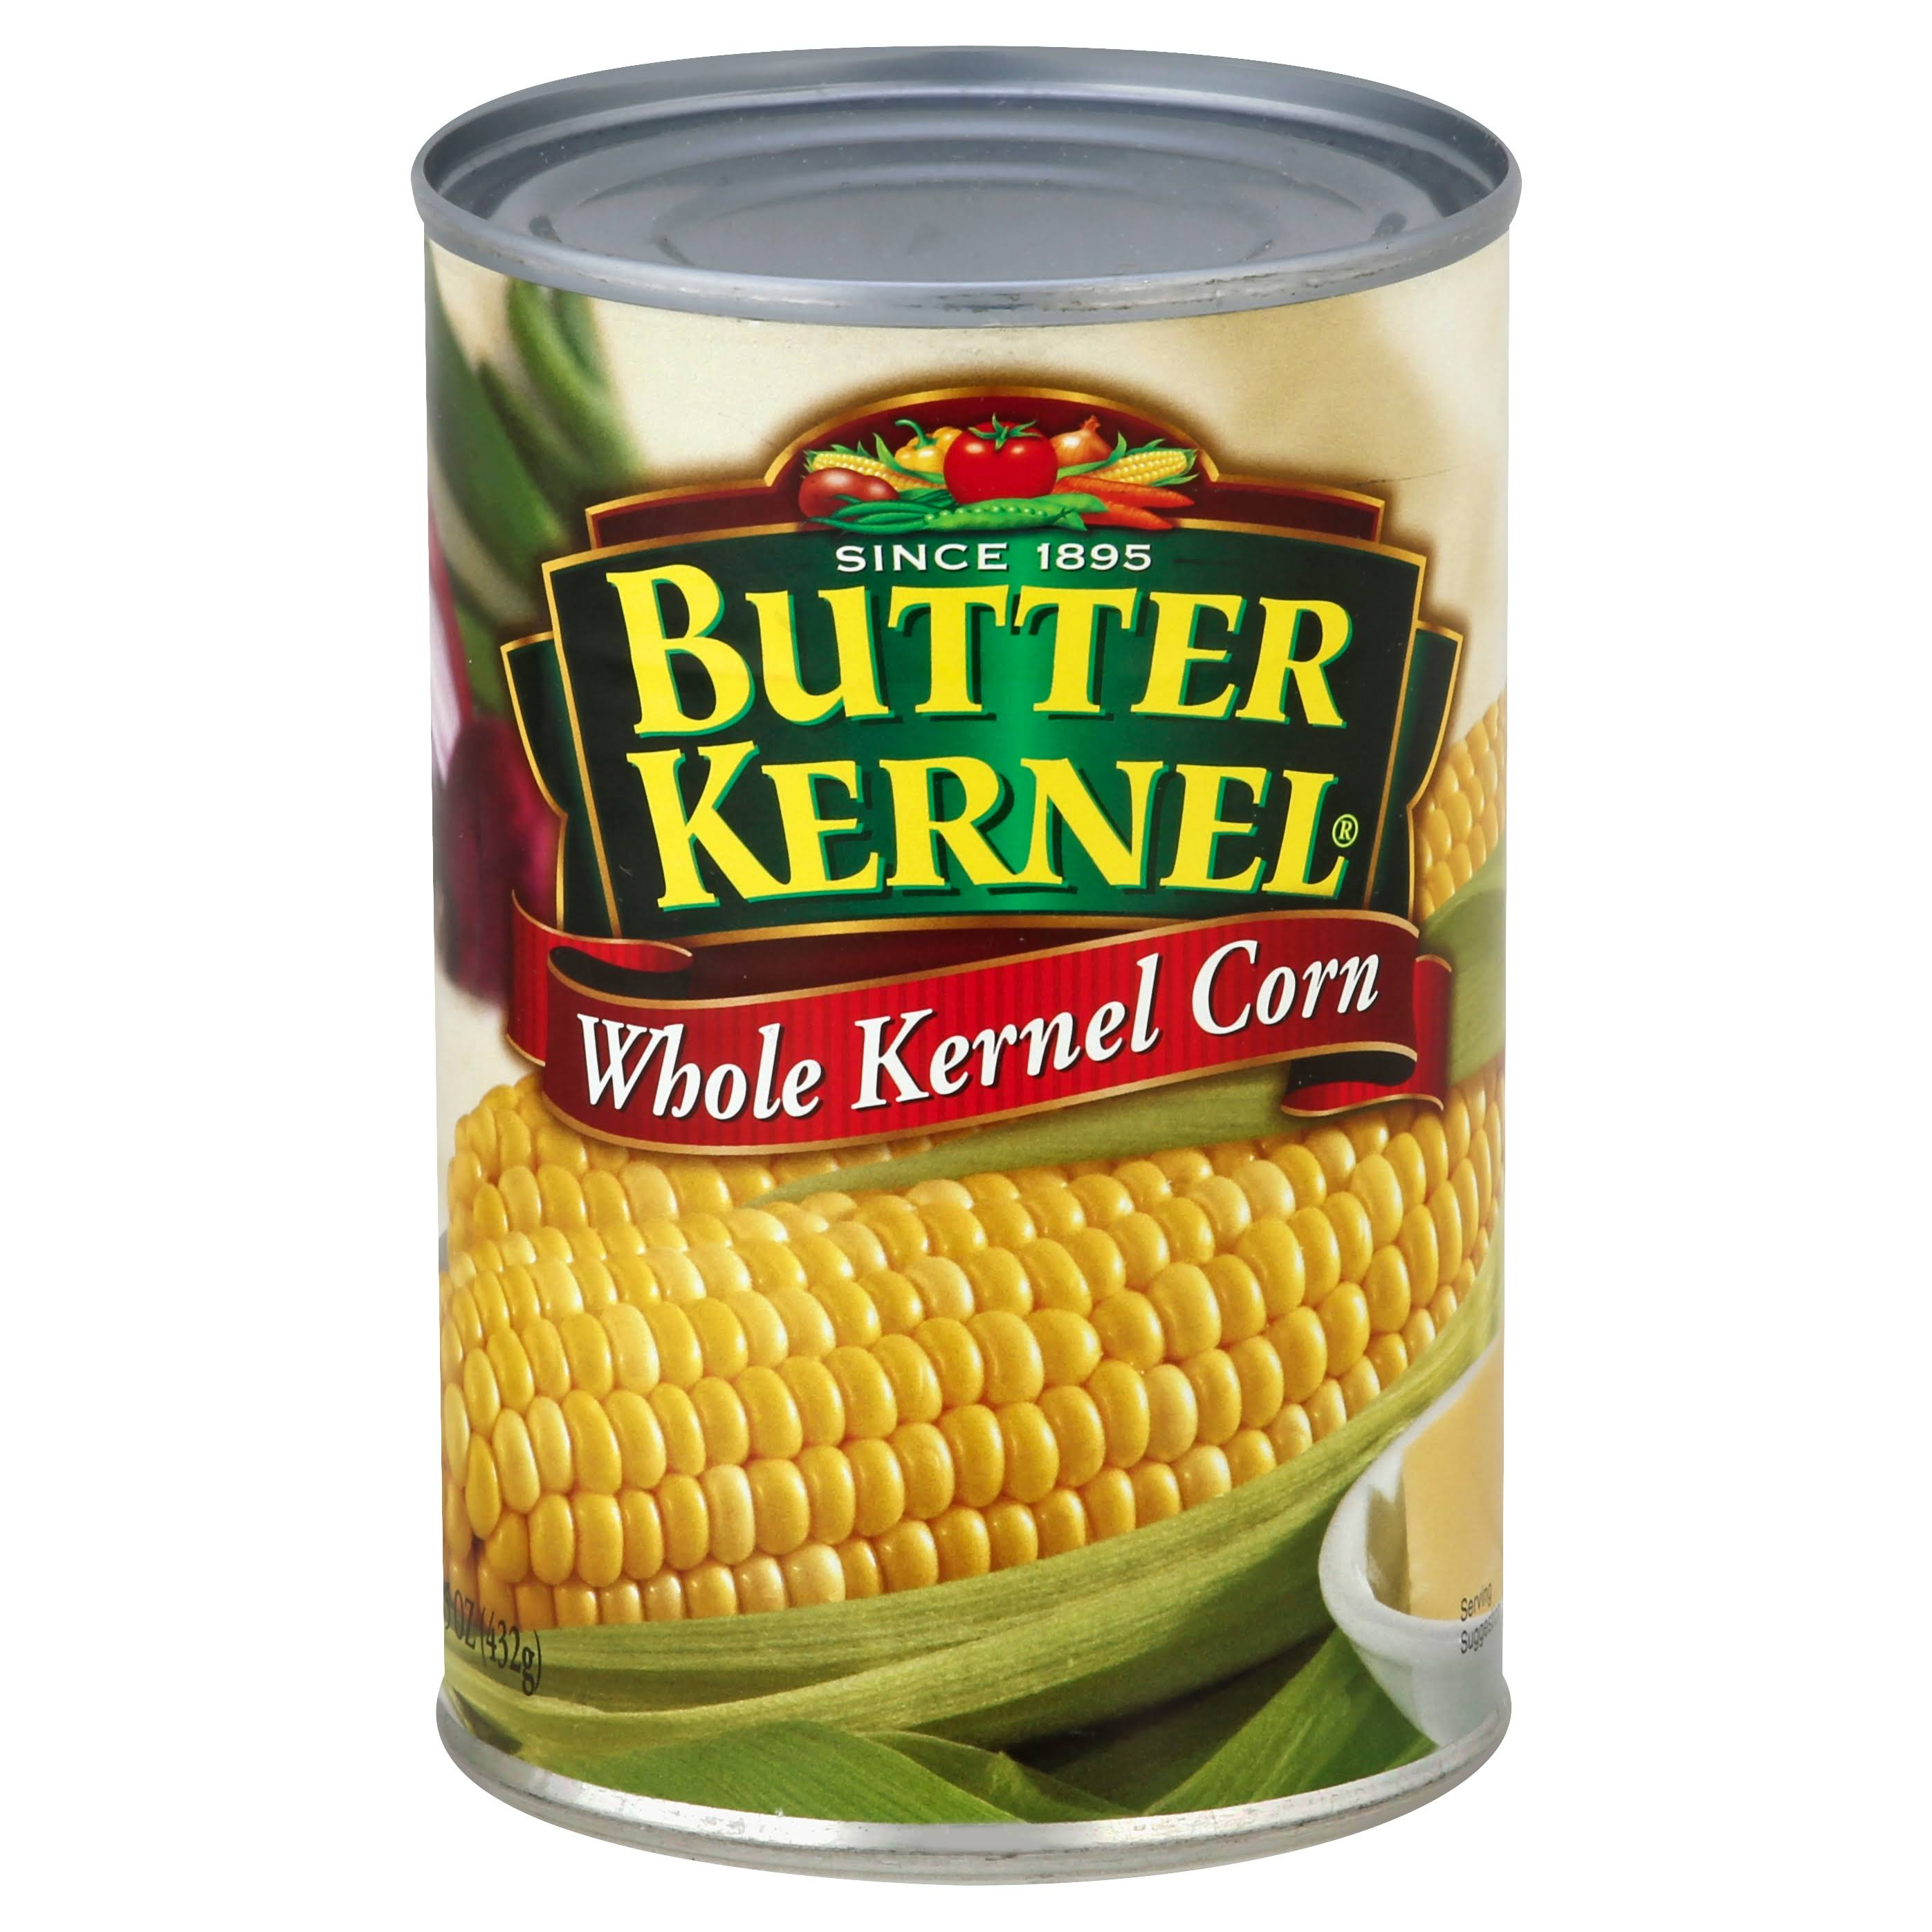 Butter Kernel Whole Kernel Corn - 15 Oz